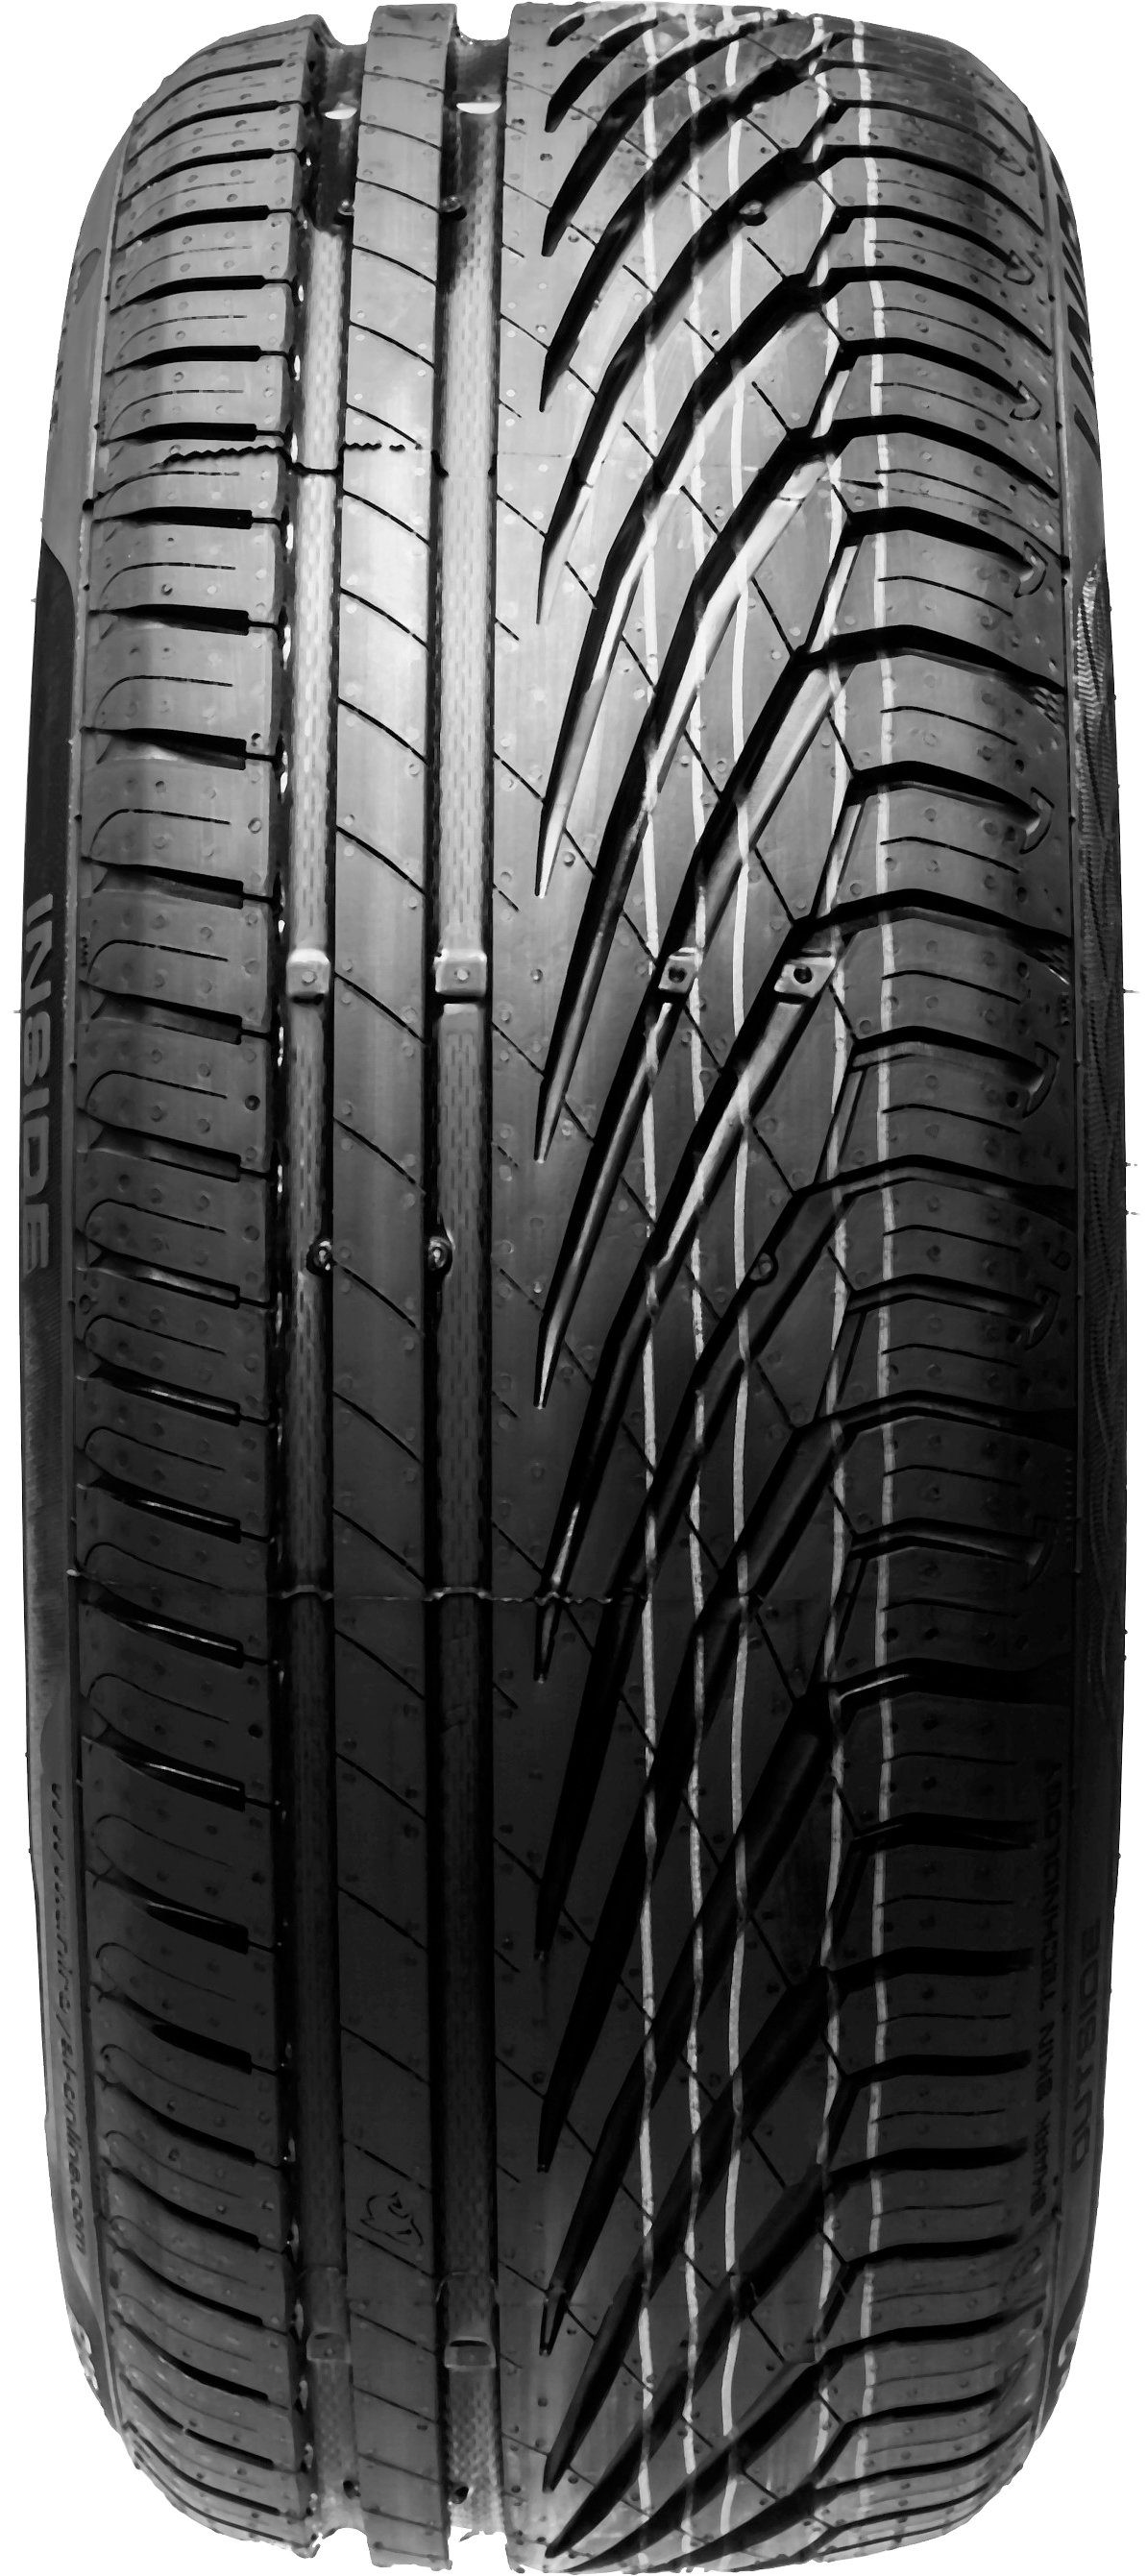 UNIROYAL Sommerreifen »RainSport 3«, 215/55 R16 97H XL